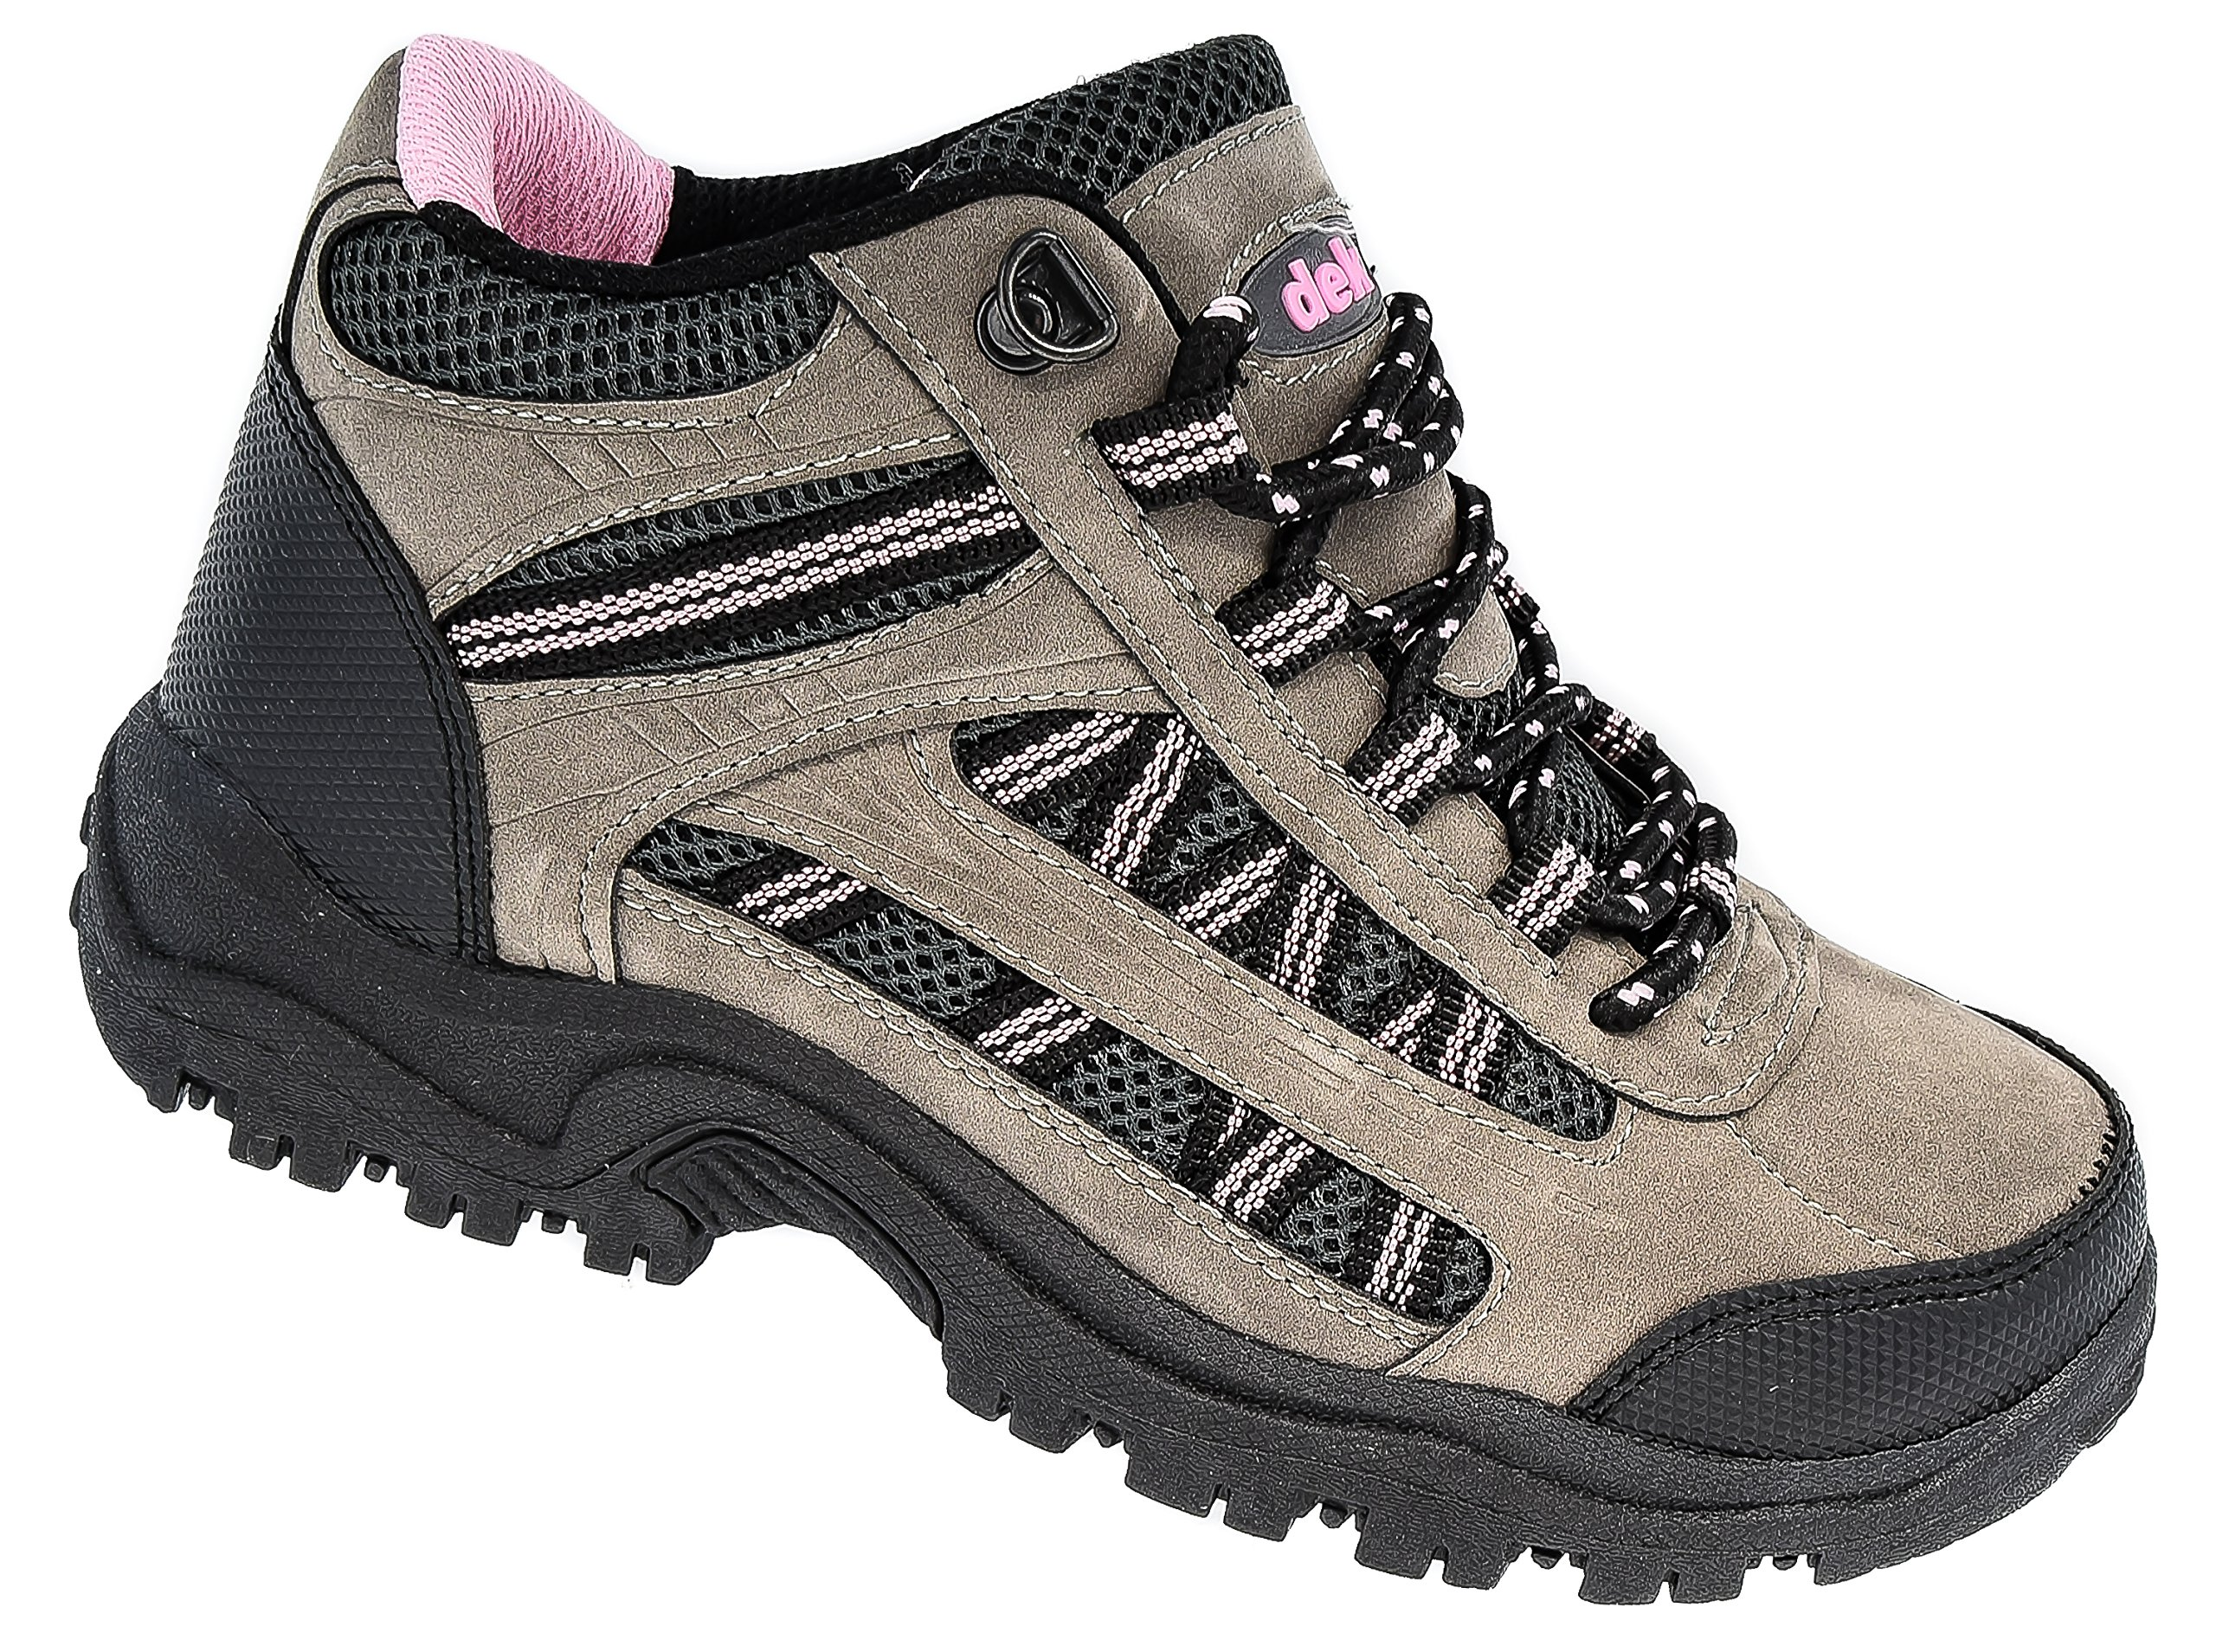 Dek Ladies Pink Grey Black Hiking Walking Trail Boots Sizes 3 to 8